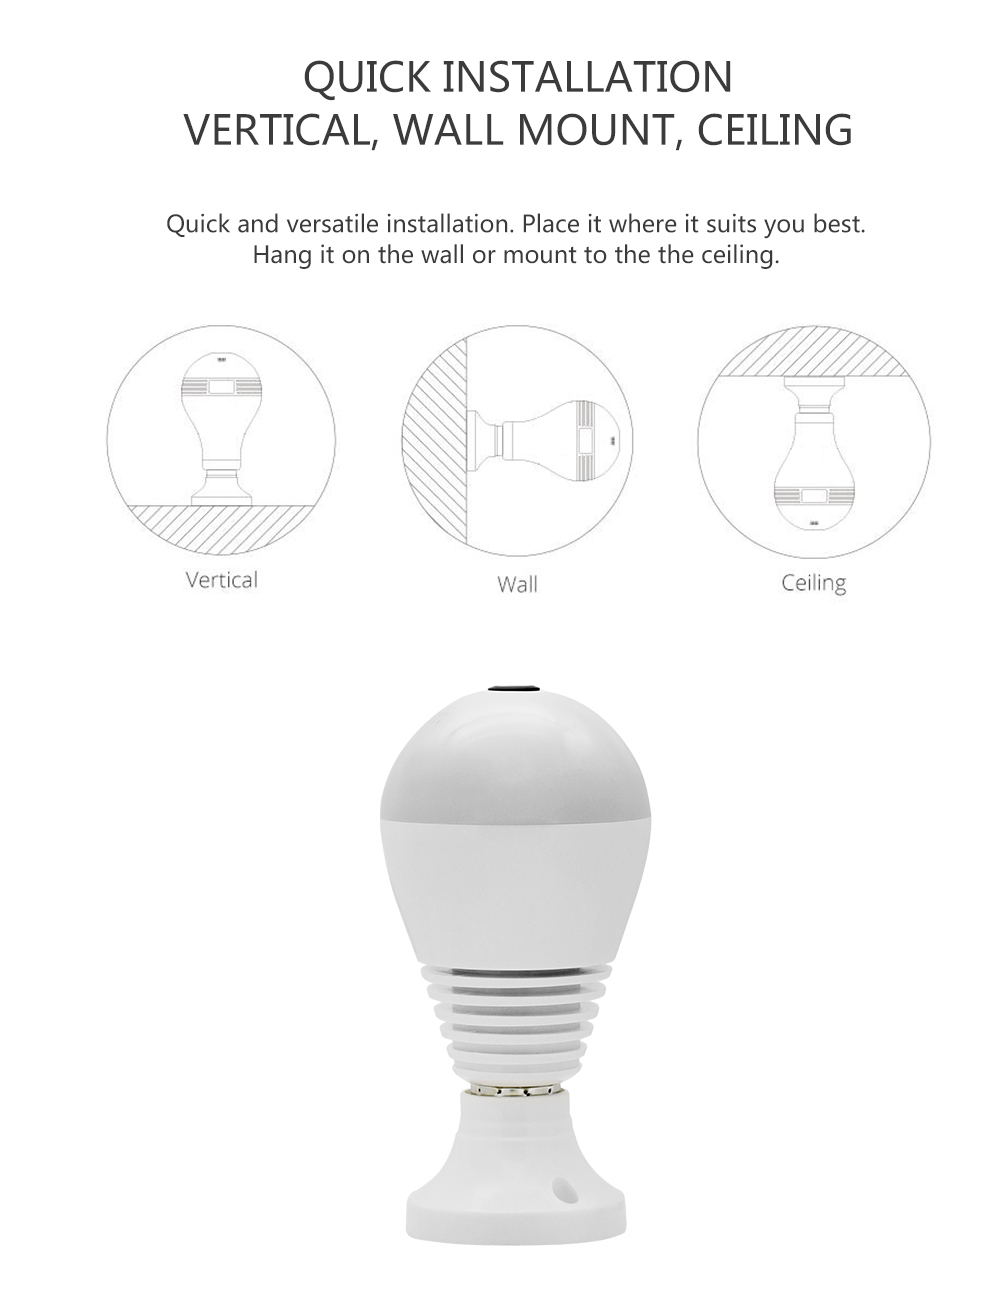 Wistino 960P Wireless VR Panoramic IP Camera Bulb Light Wifi FishEye 360 degree CCTV Surveillance Security Monitor Comone 1 (9)